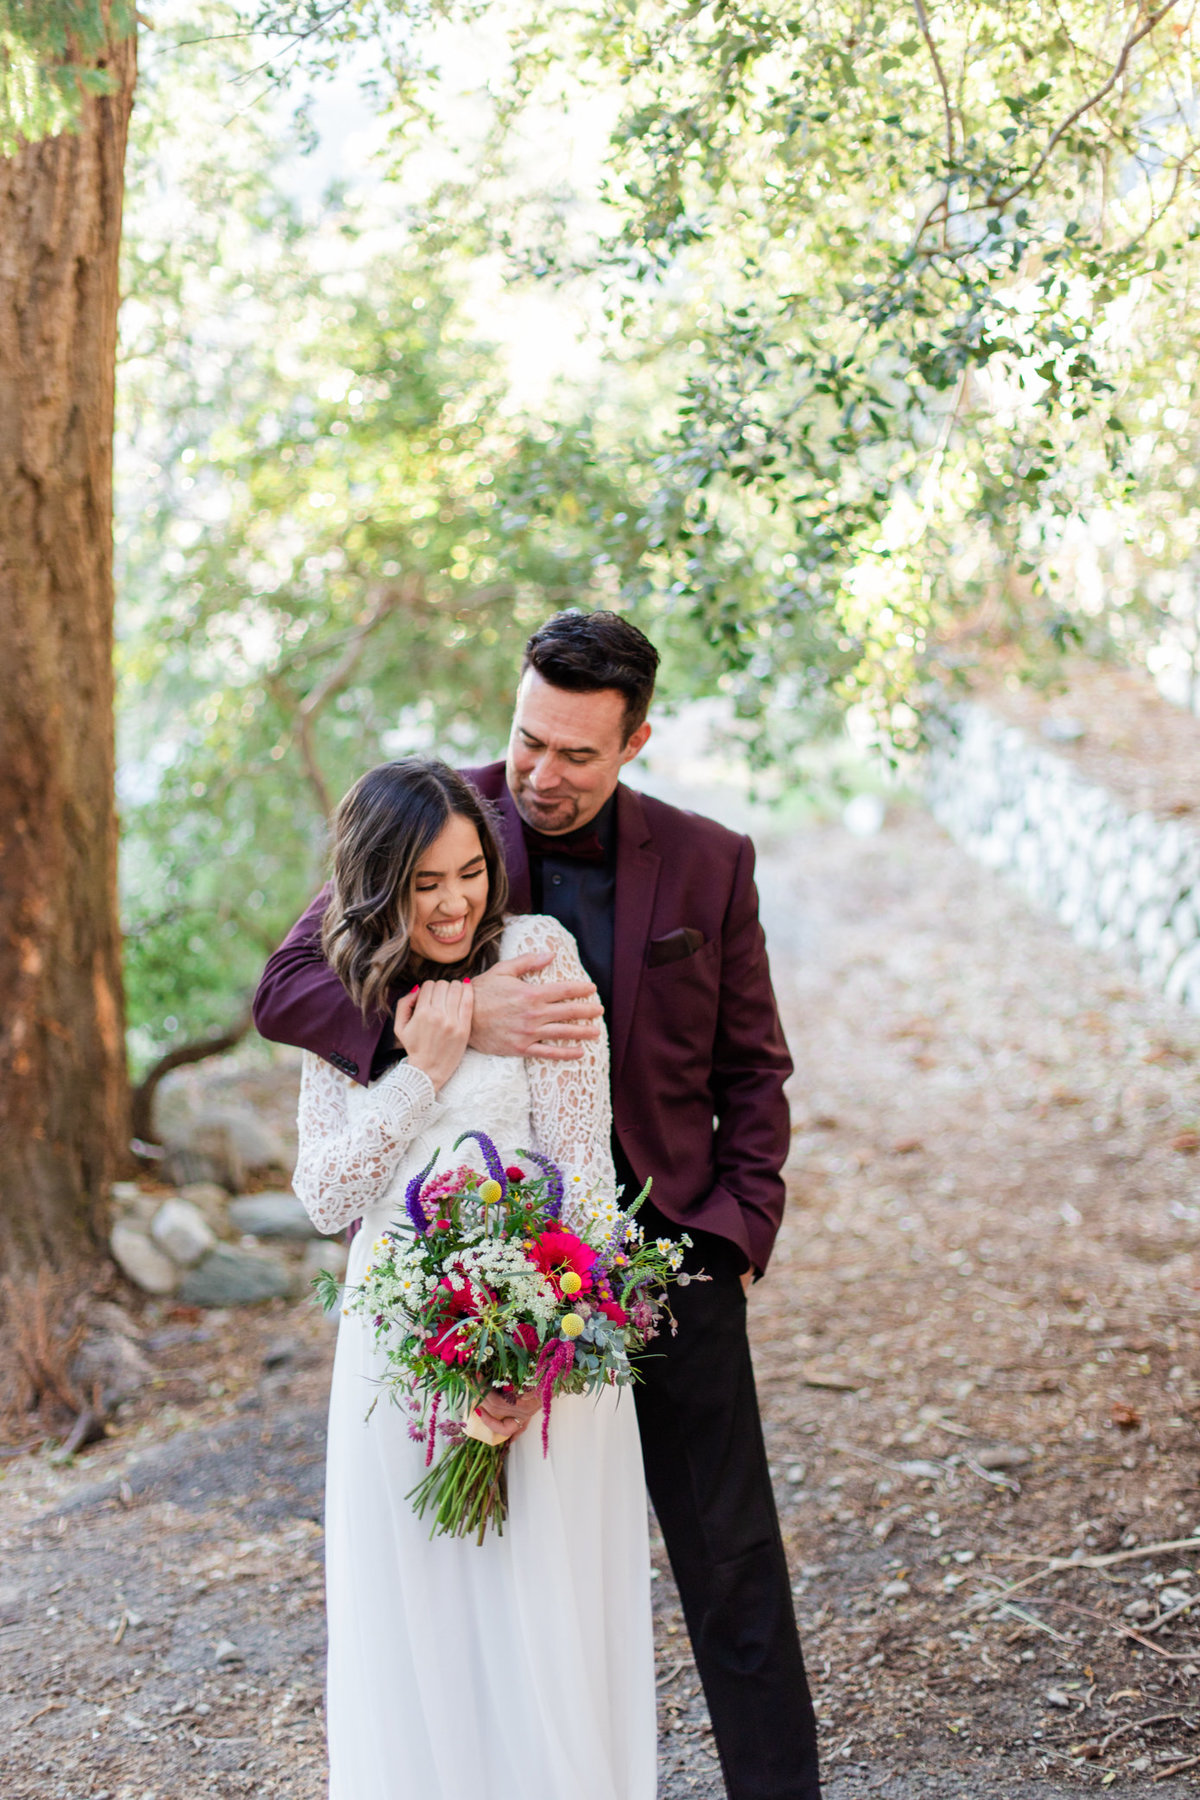 Mt. Baldy Elopement, Mt. Baldy Styled Shoot, Mt. Baldy Wedding, Forest Elopement, Forest Wedding, Boho Wedding, Boho Elopement, Mt. Baldy Boho, Forest Boho, Woodland Boho-33